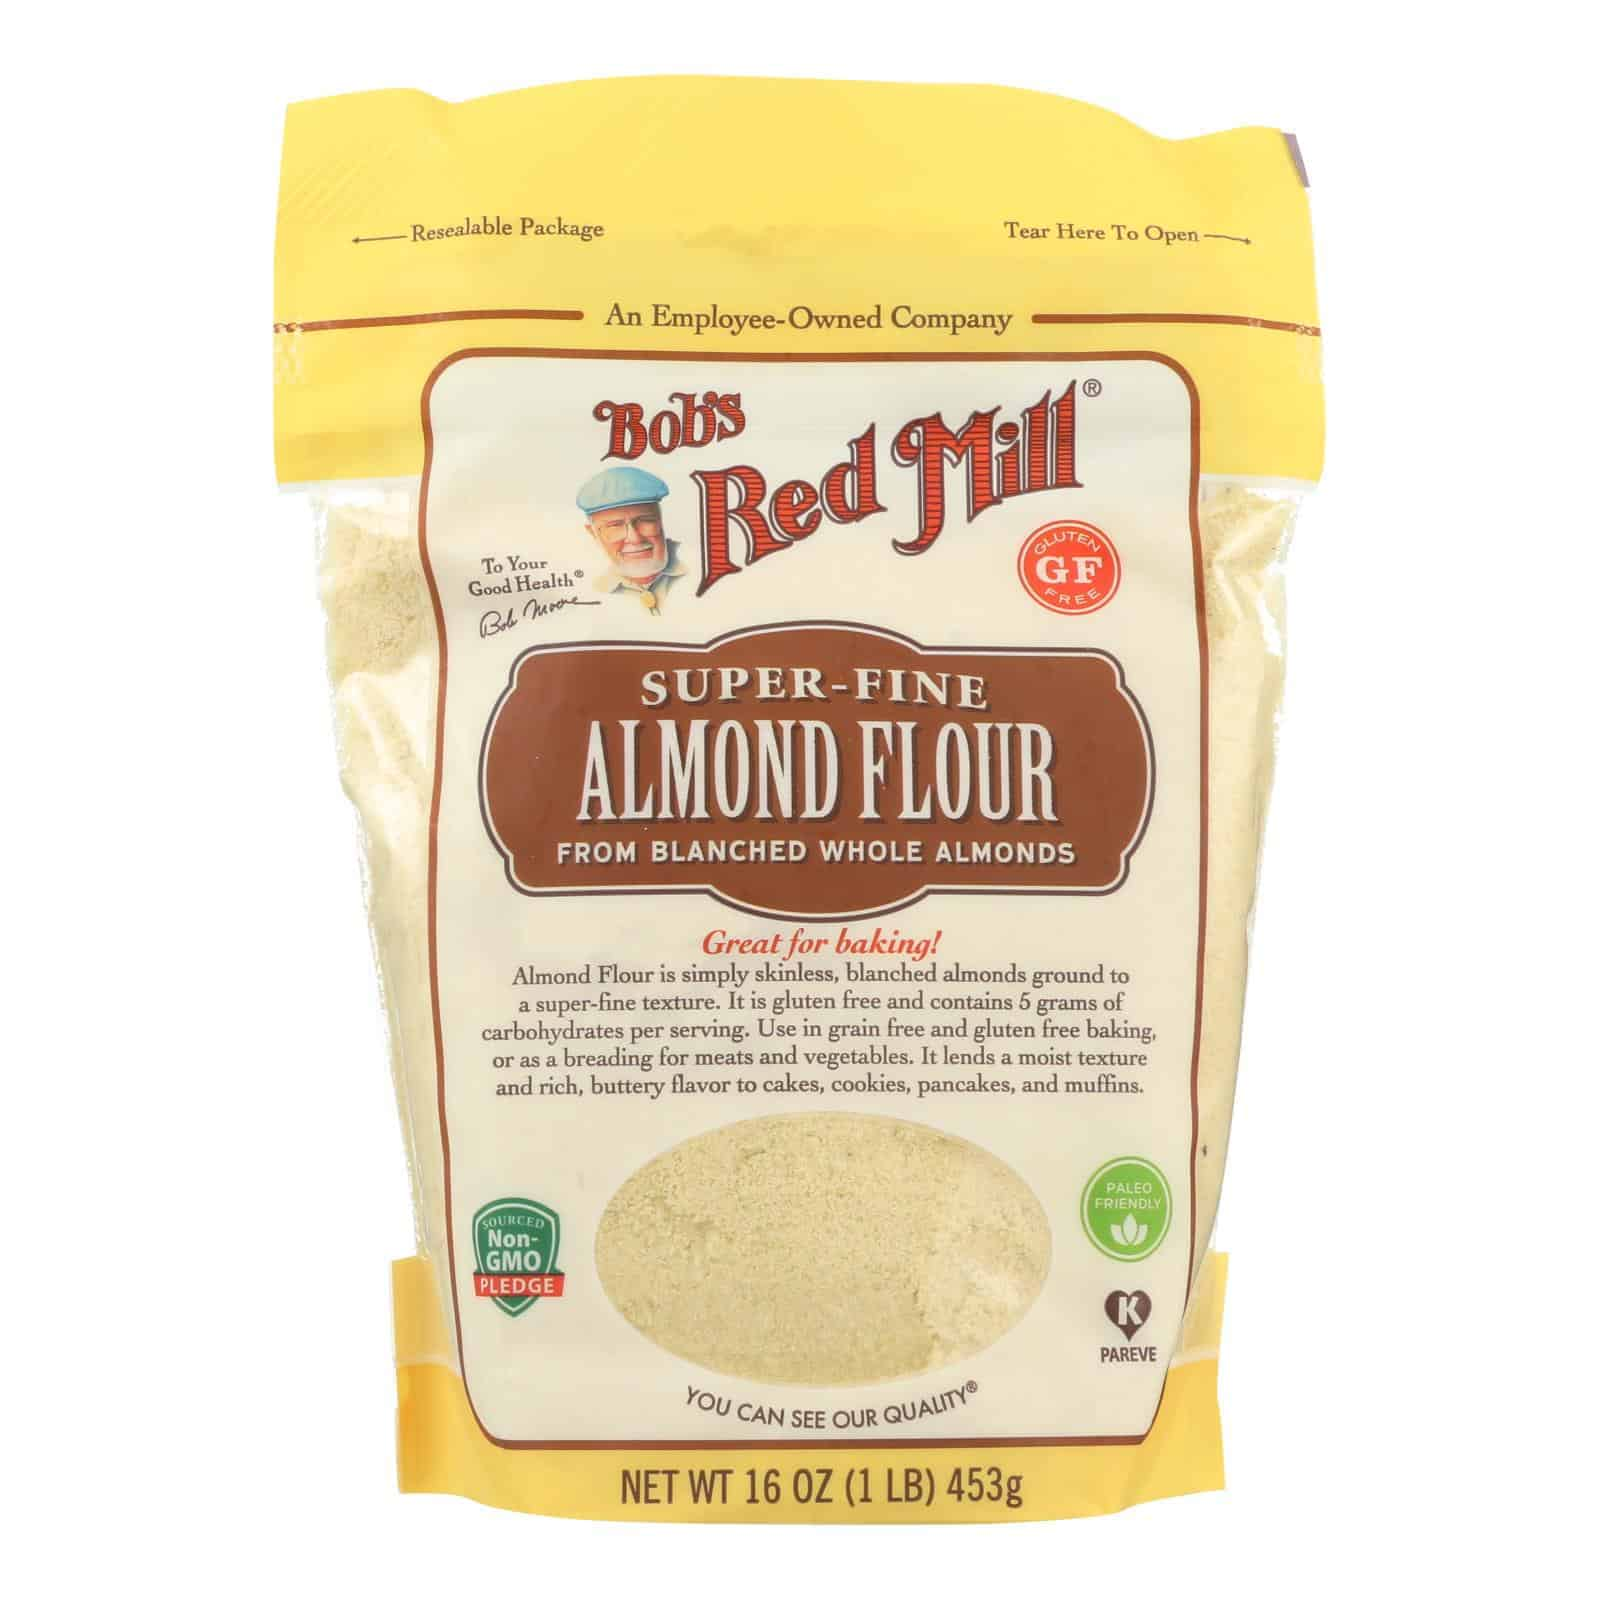 Bob's Red Mill Almond Flour, 16 Oz